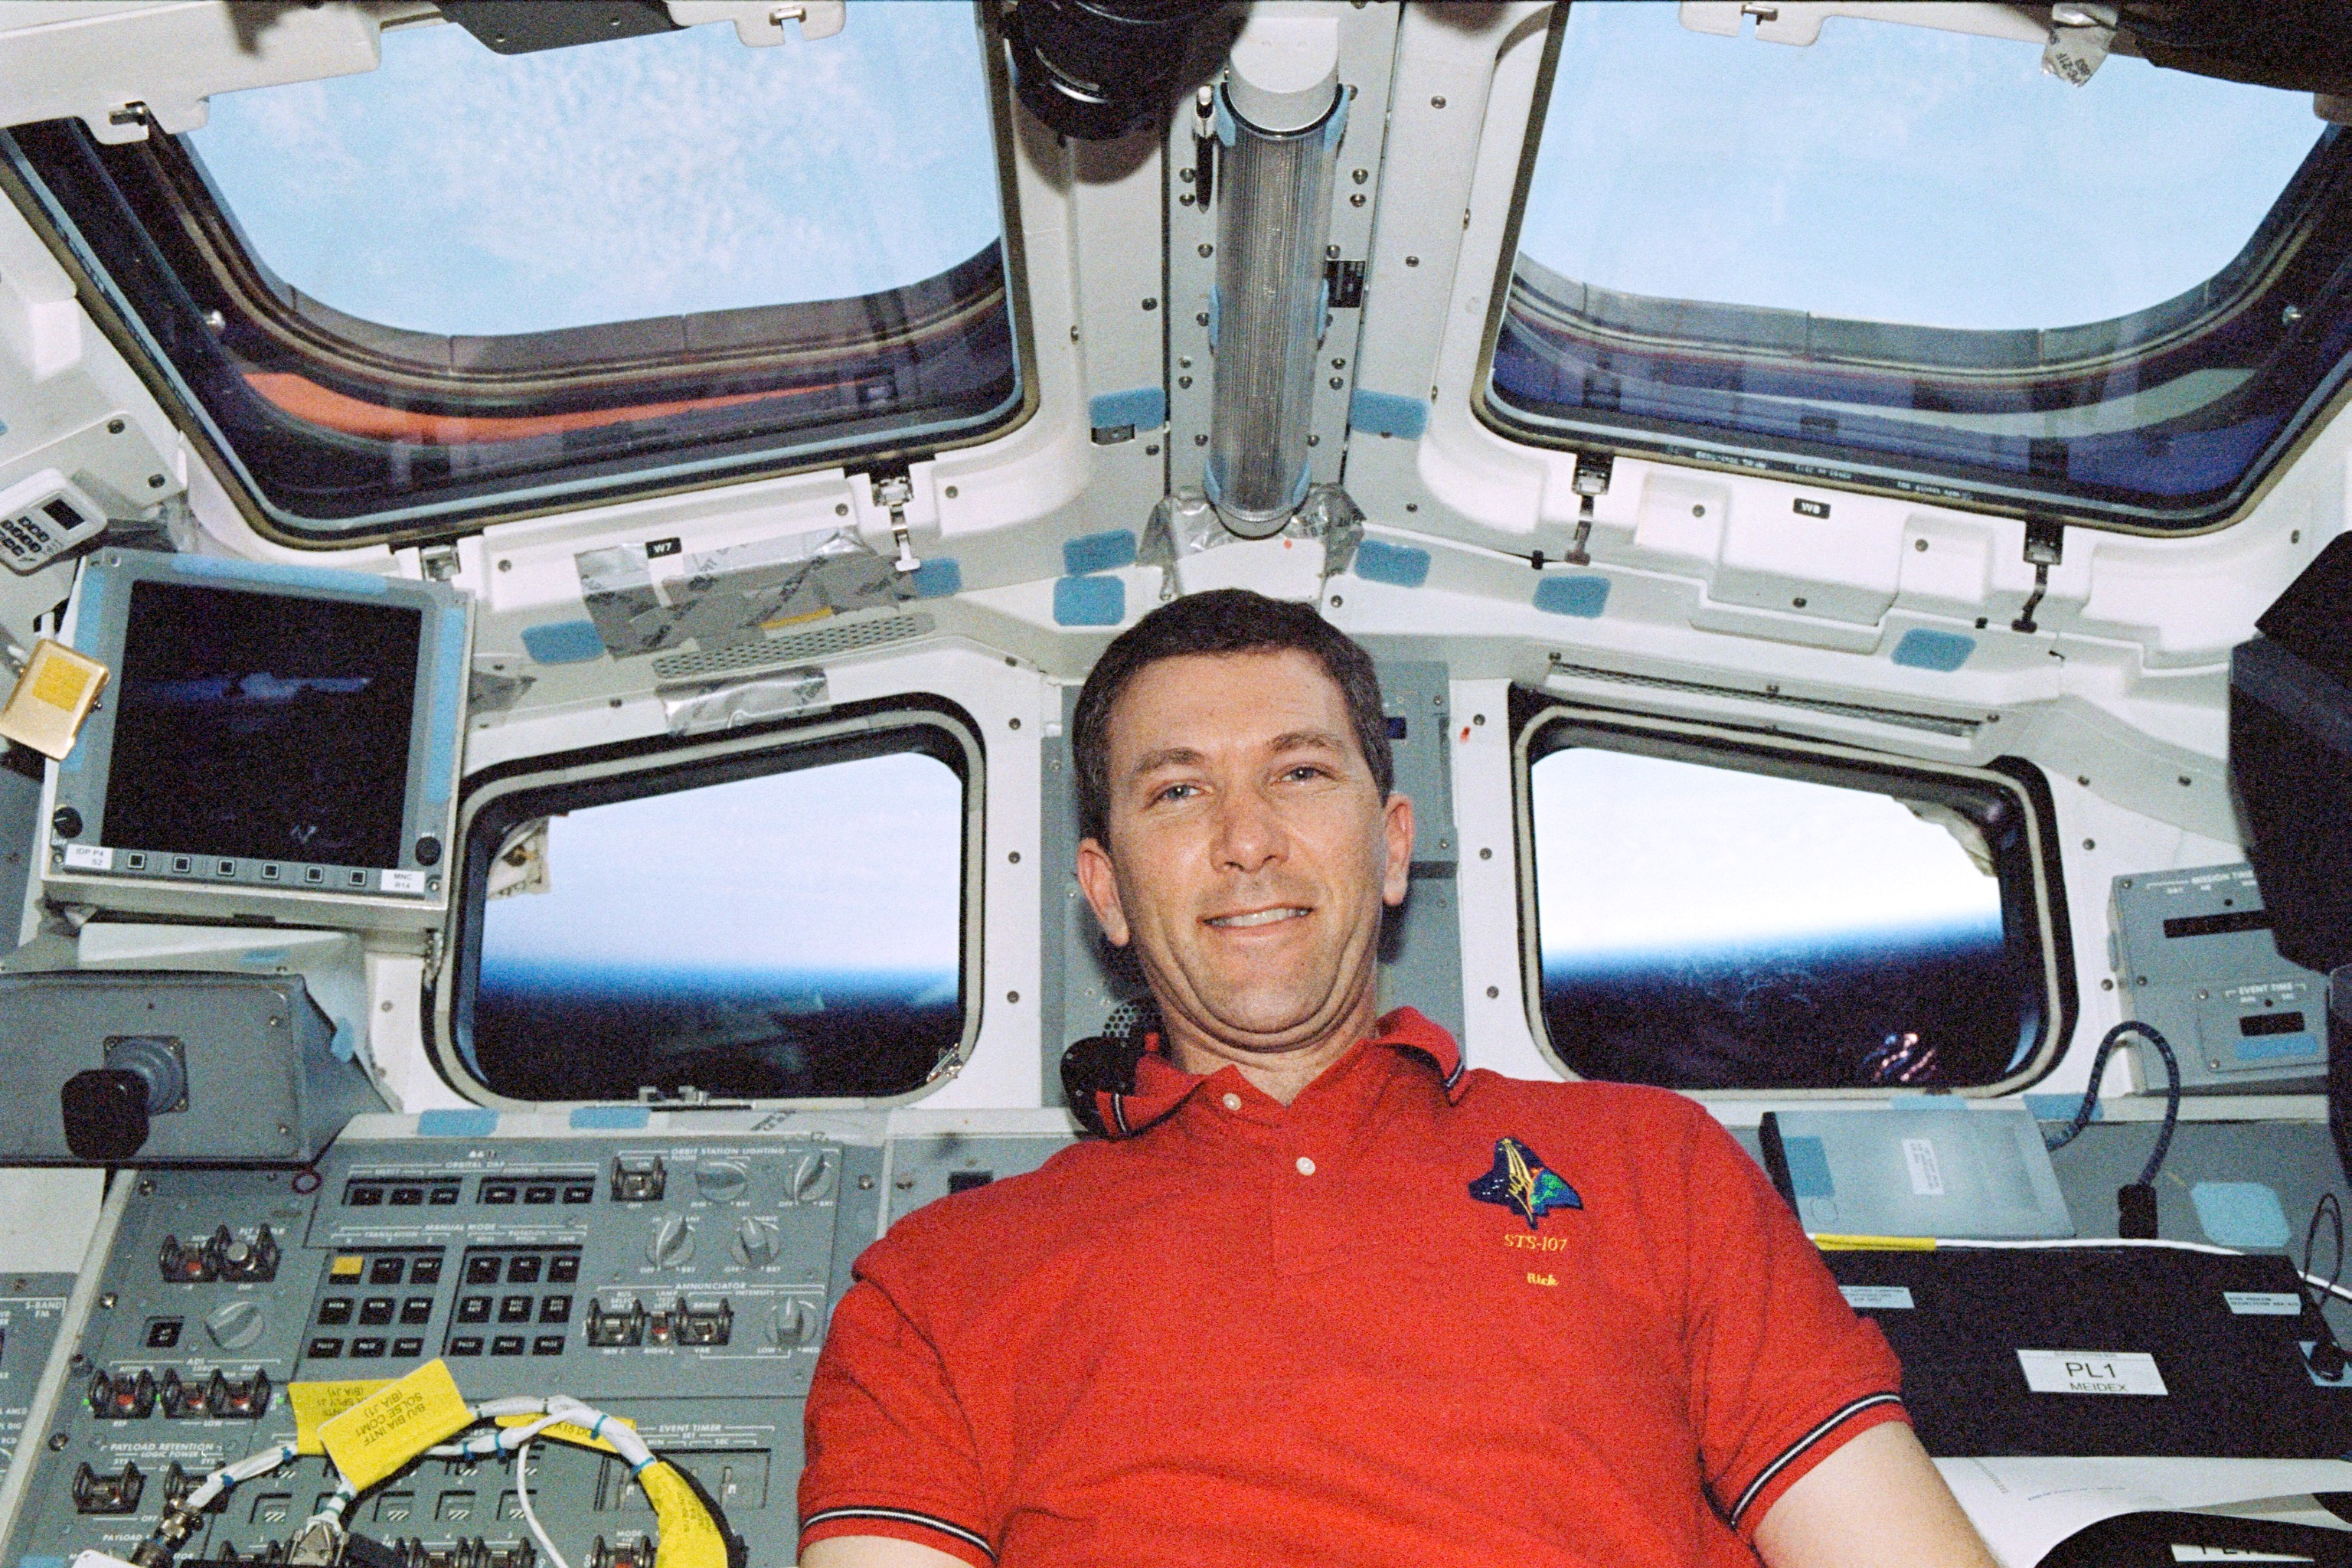 Astronaut Rick Husband Near Control Panels